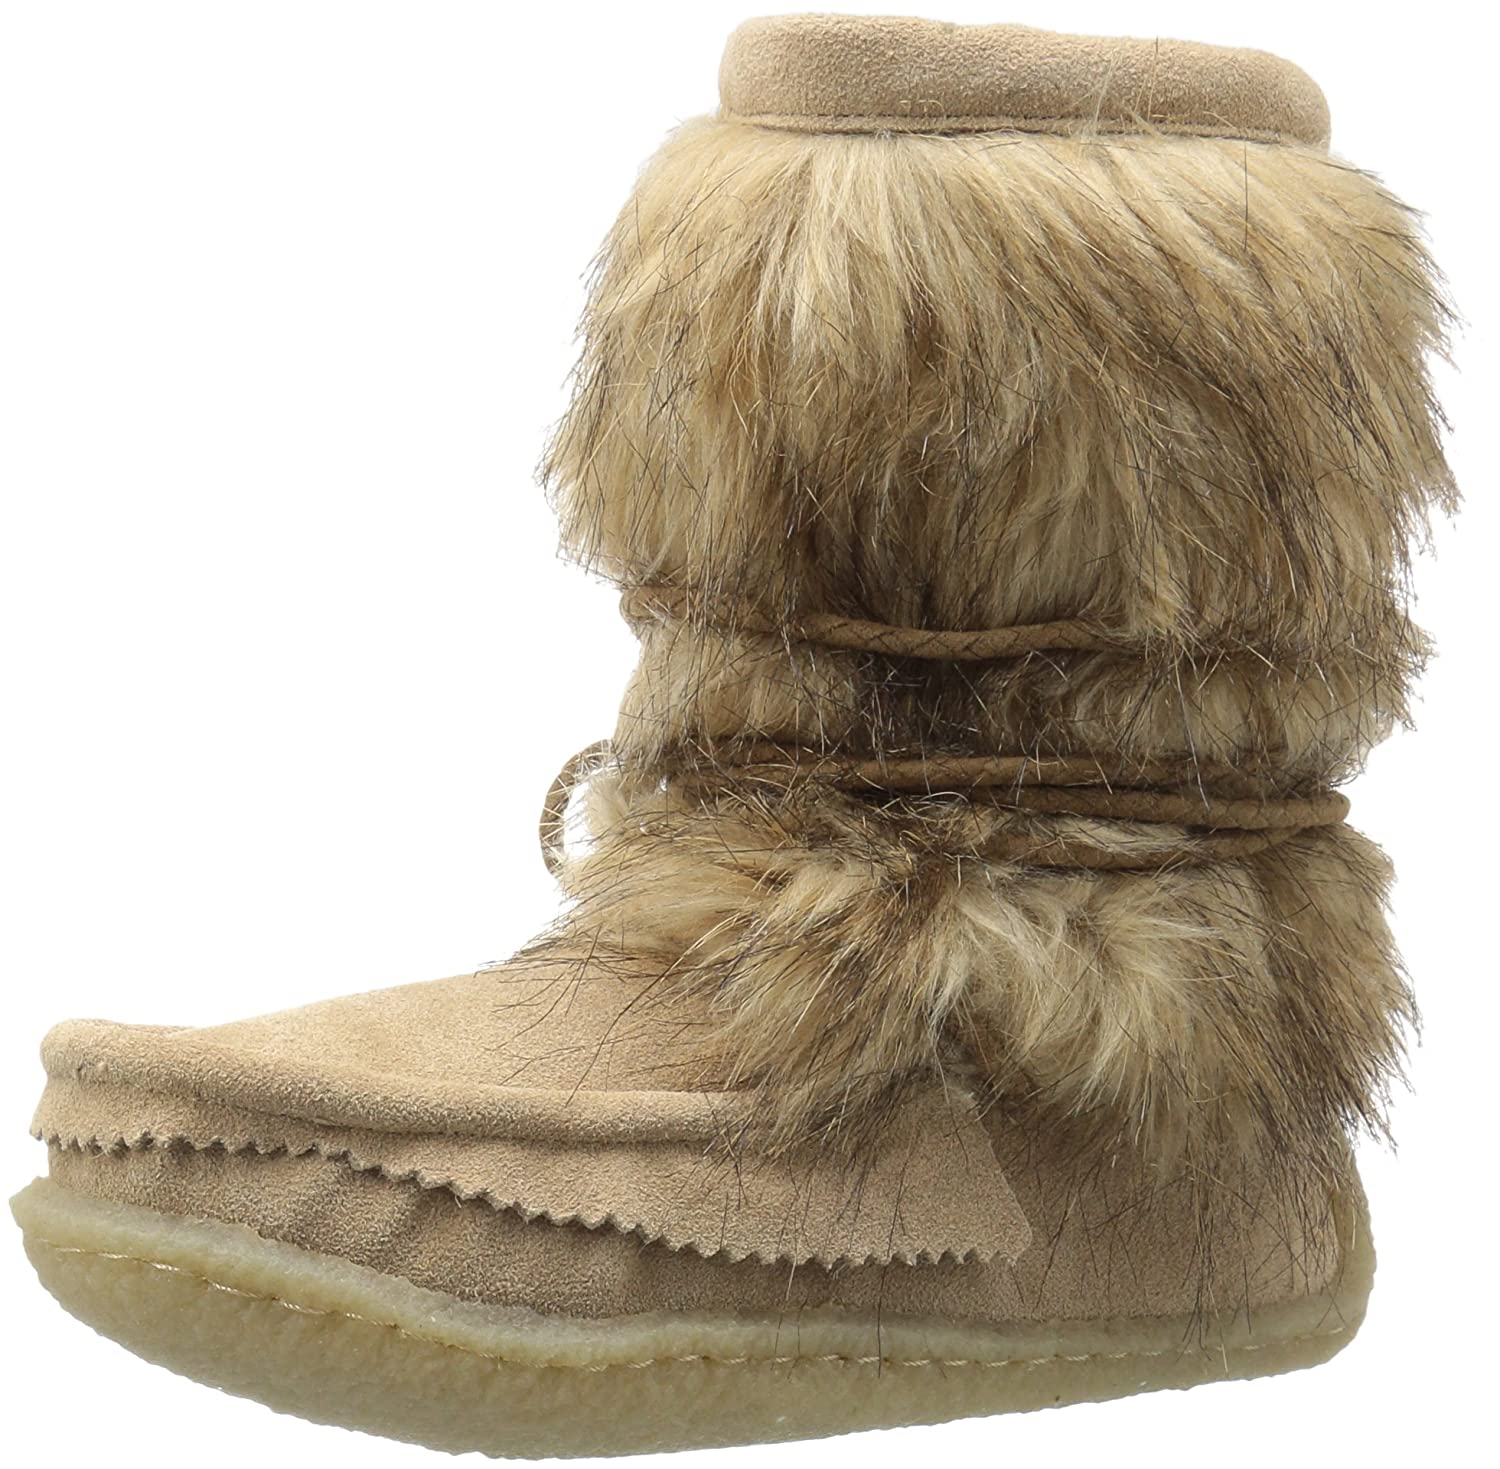 Joie Women's Alabama Snow Boot